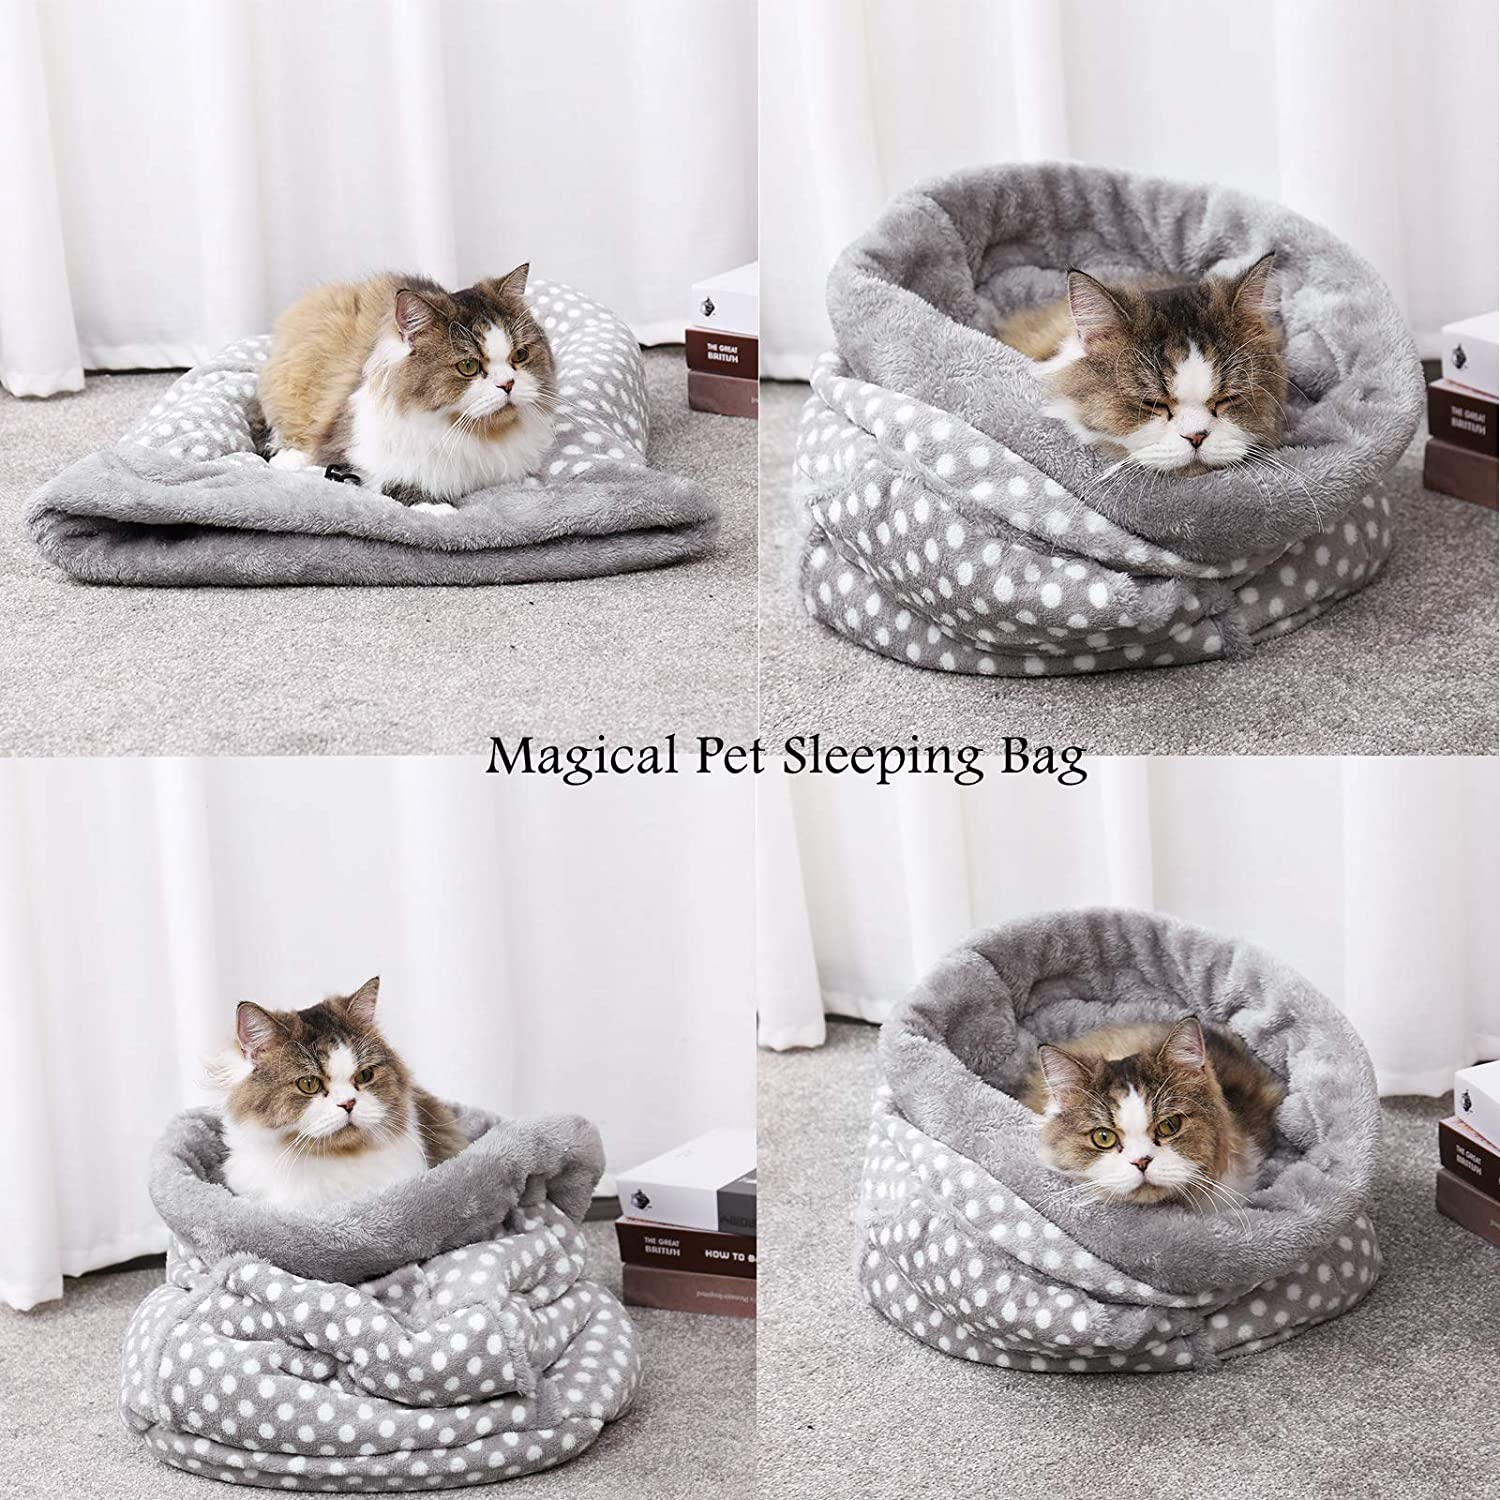 Amazon.com: Pet Magic Saco de dormir, Pawz Hoja de ultra ...